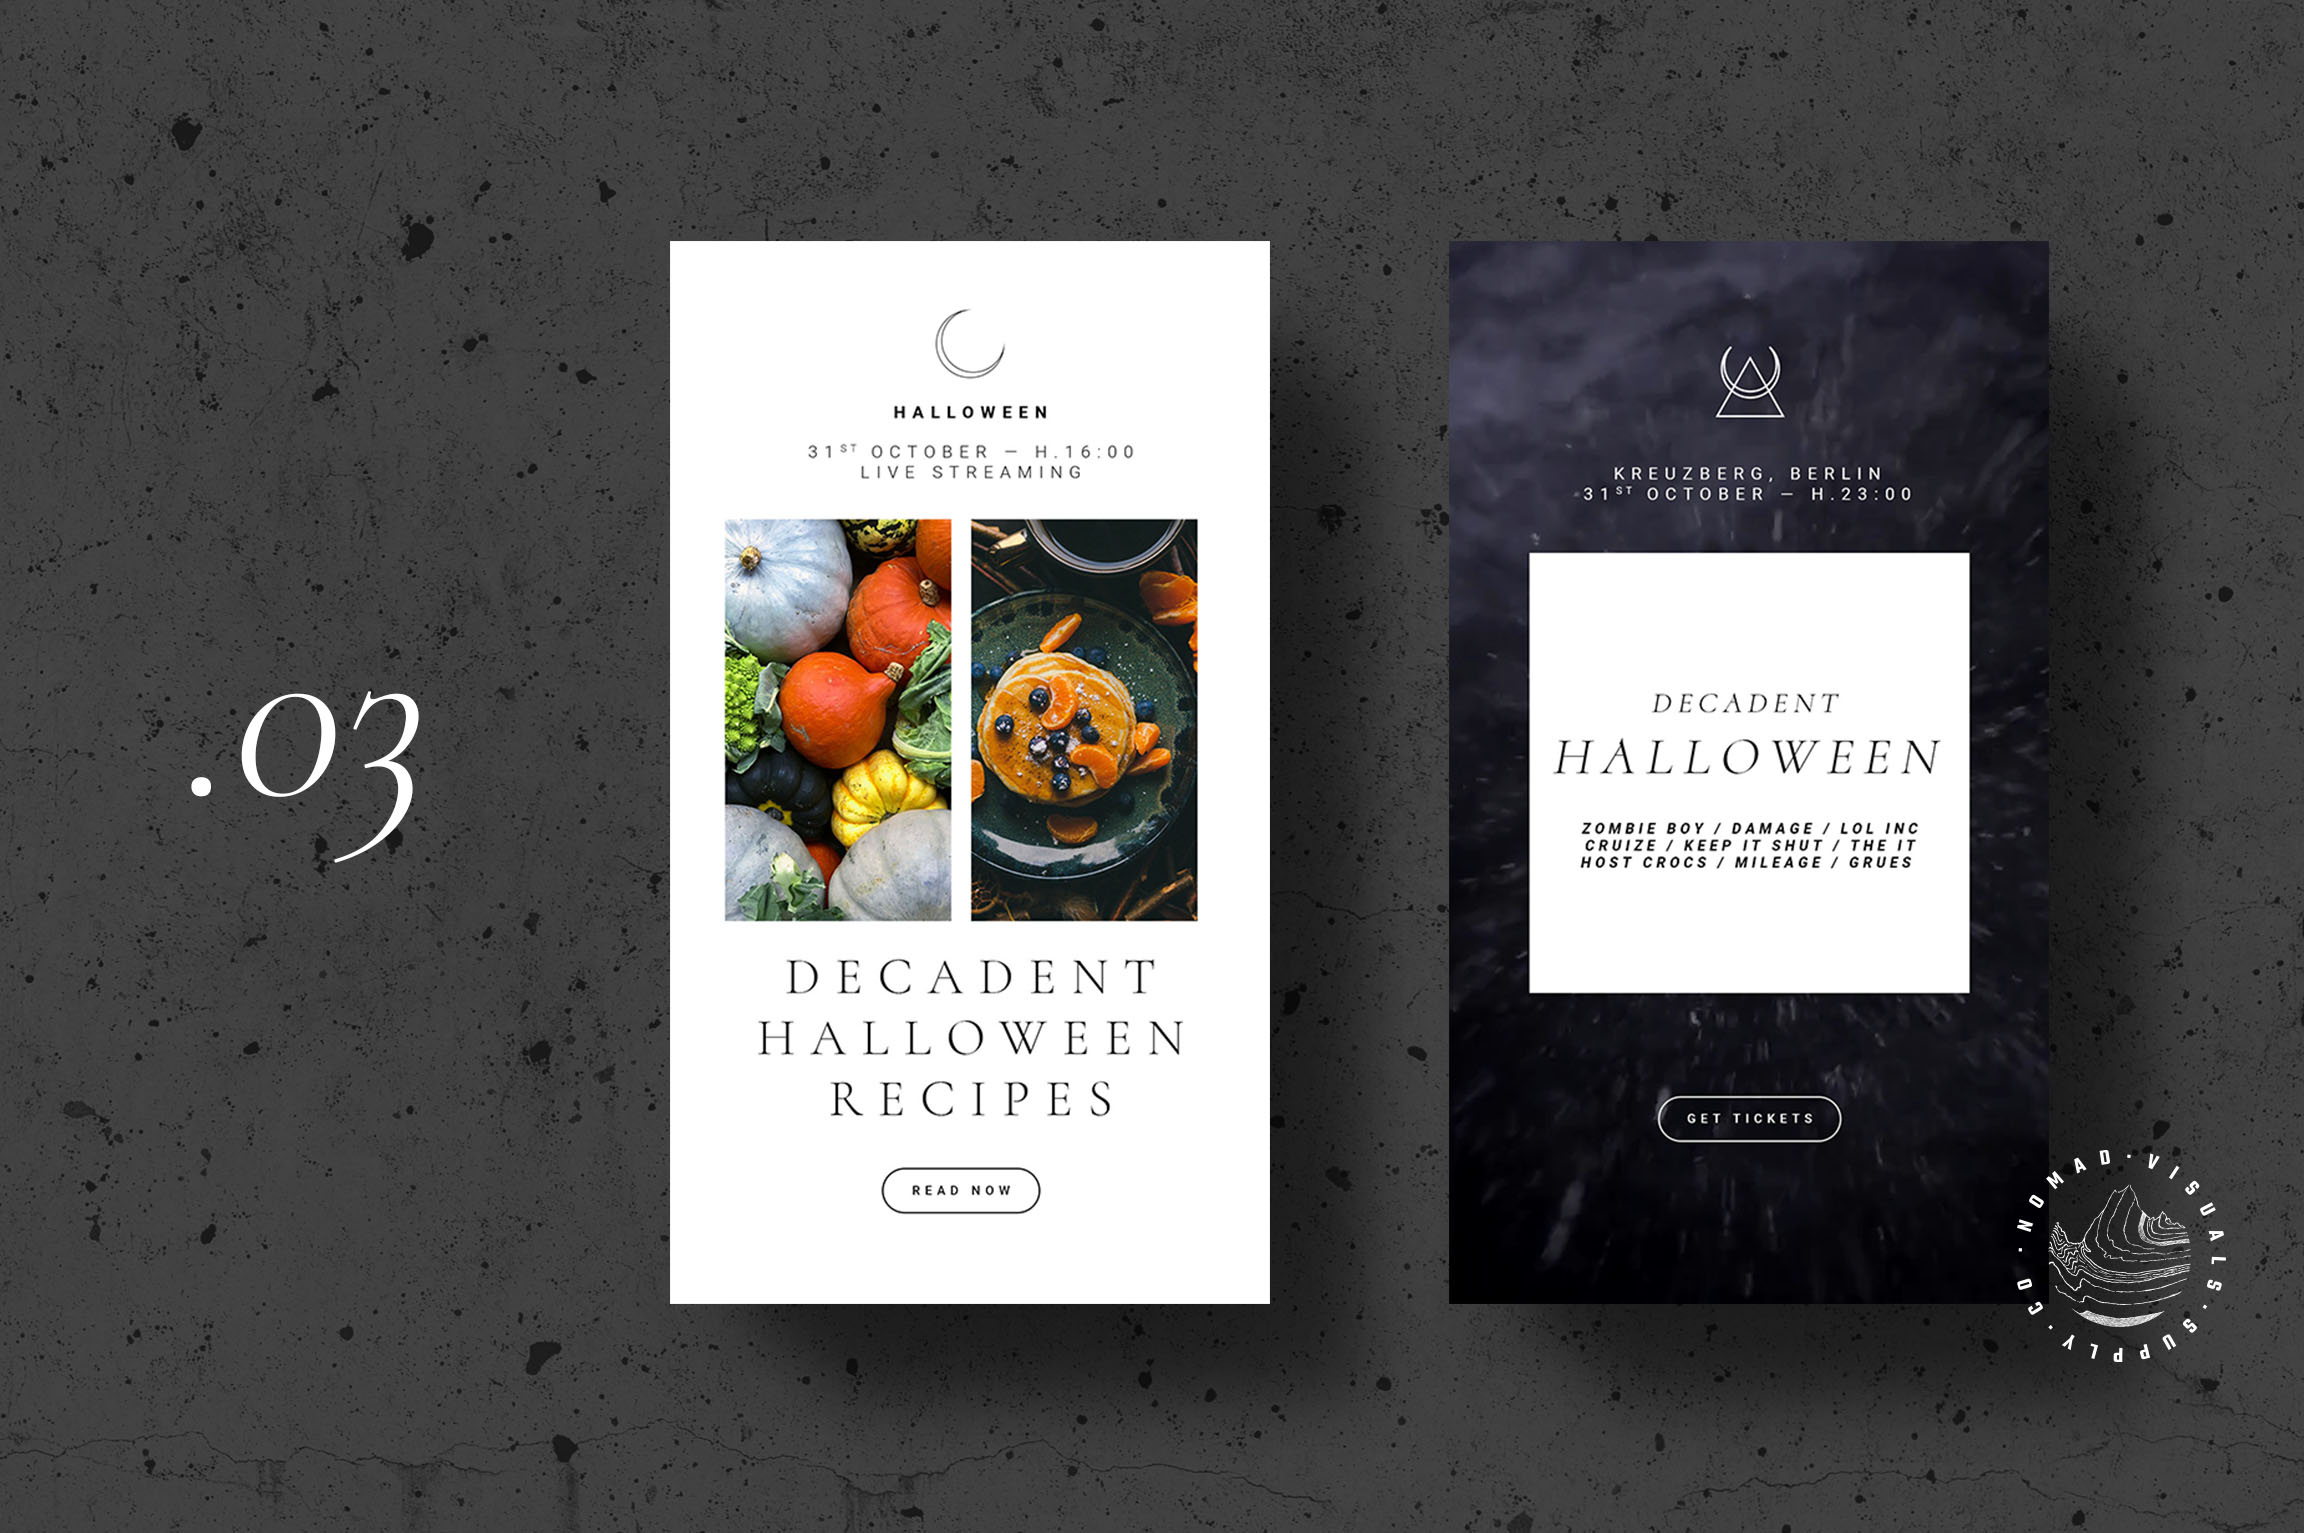 Halloween Animated Instagram Stories Templates - Event Promo example image 5